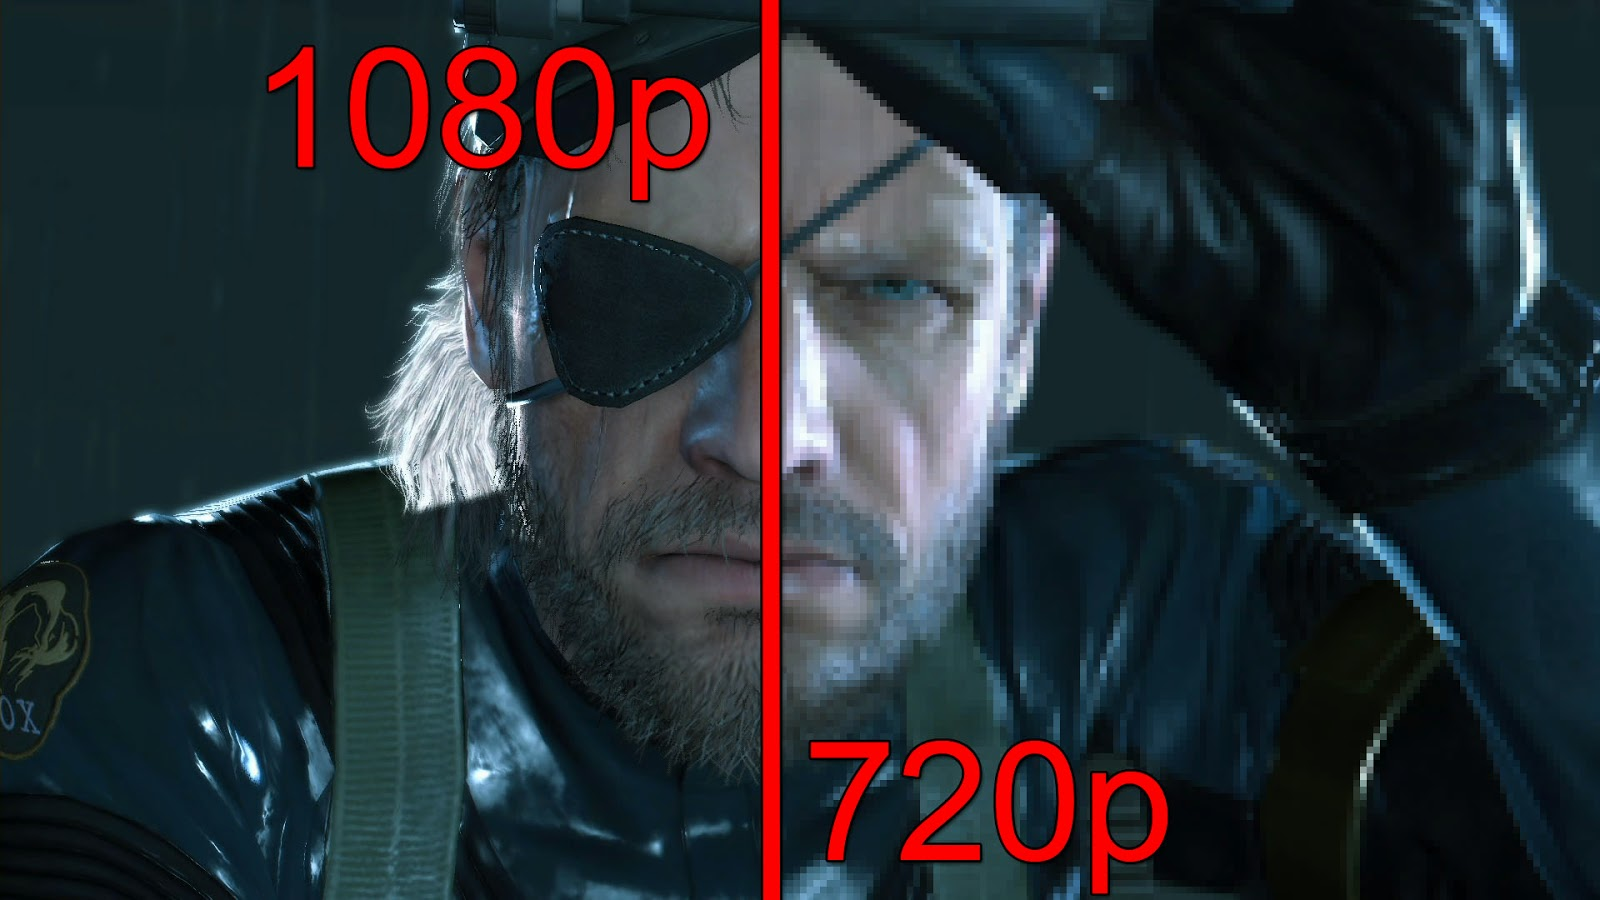 720p vs 1080p - What\u0027s the difference?-1080p Video Tool